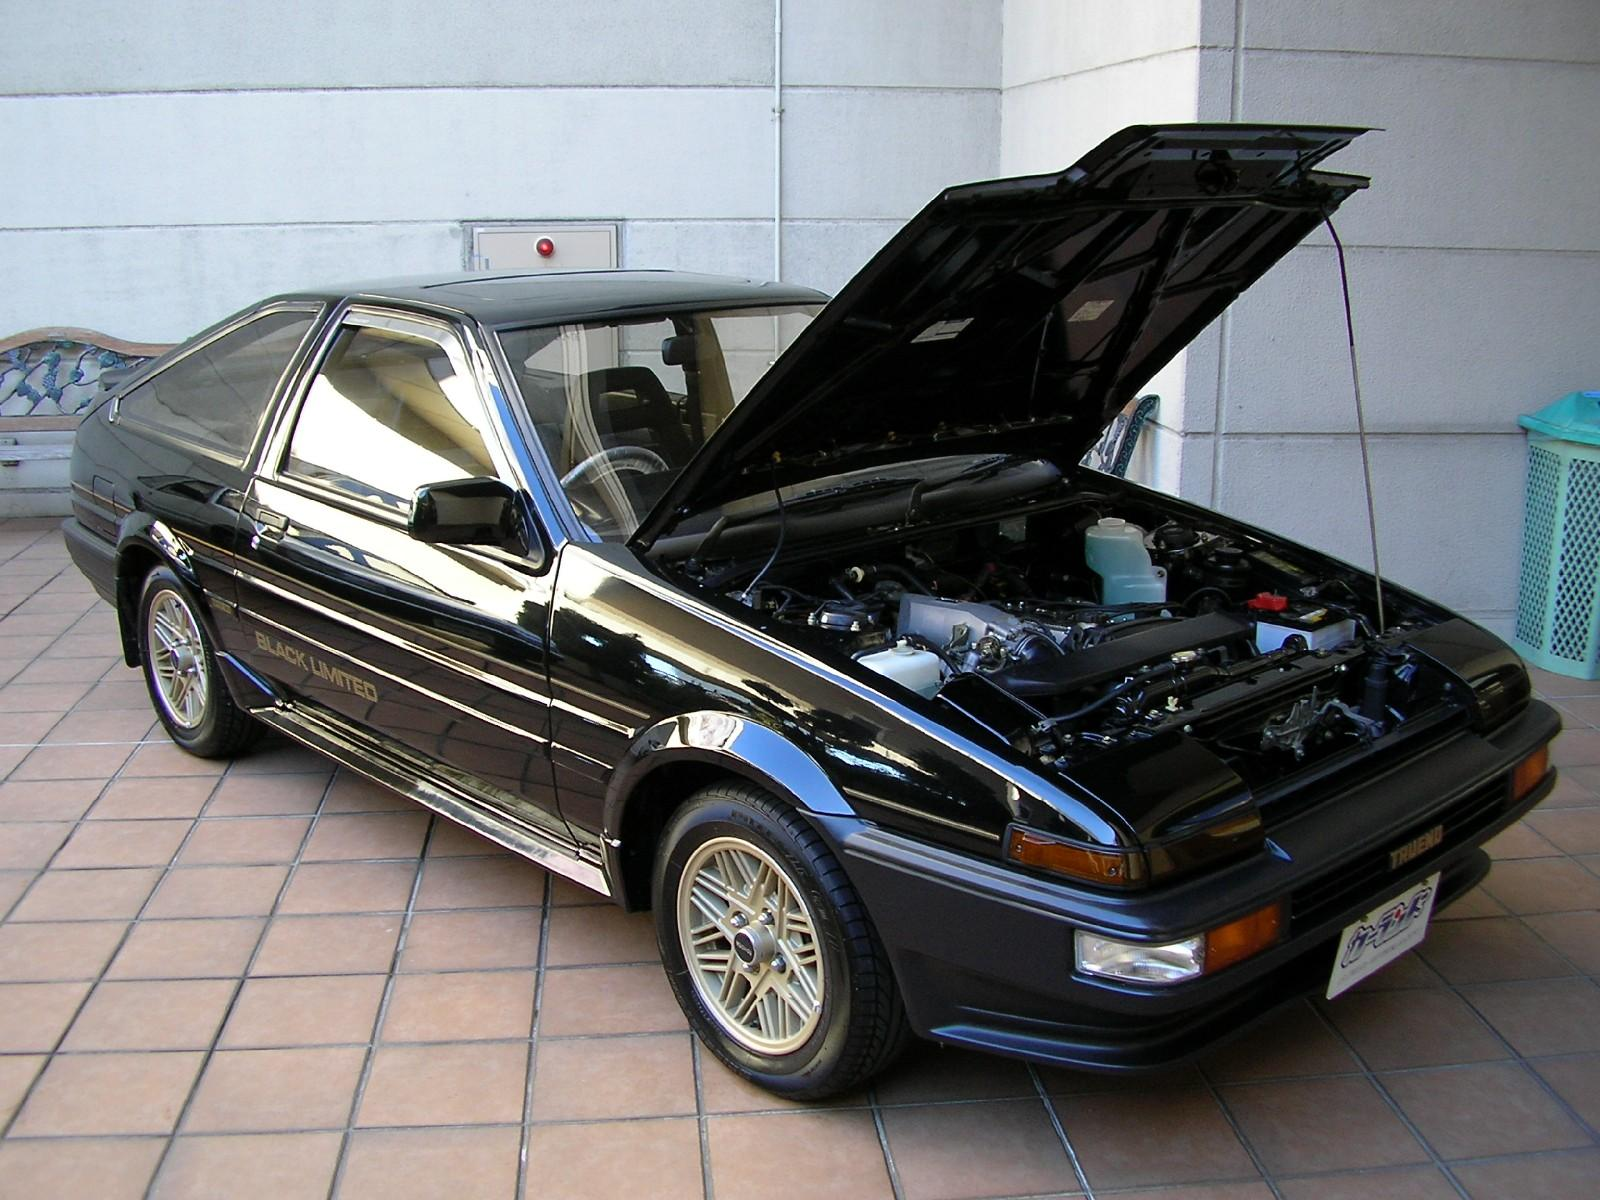 ae86 trivia all sprinter trueno ae86 black limited facts. Black Bedroom Furniture Sets. Home Design Ideas